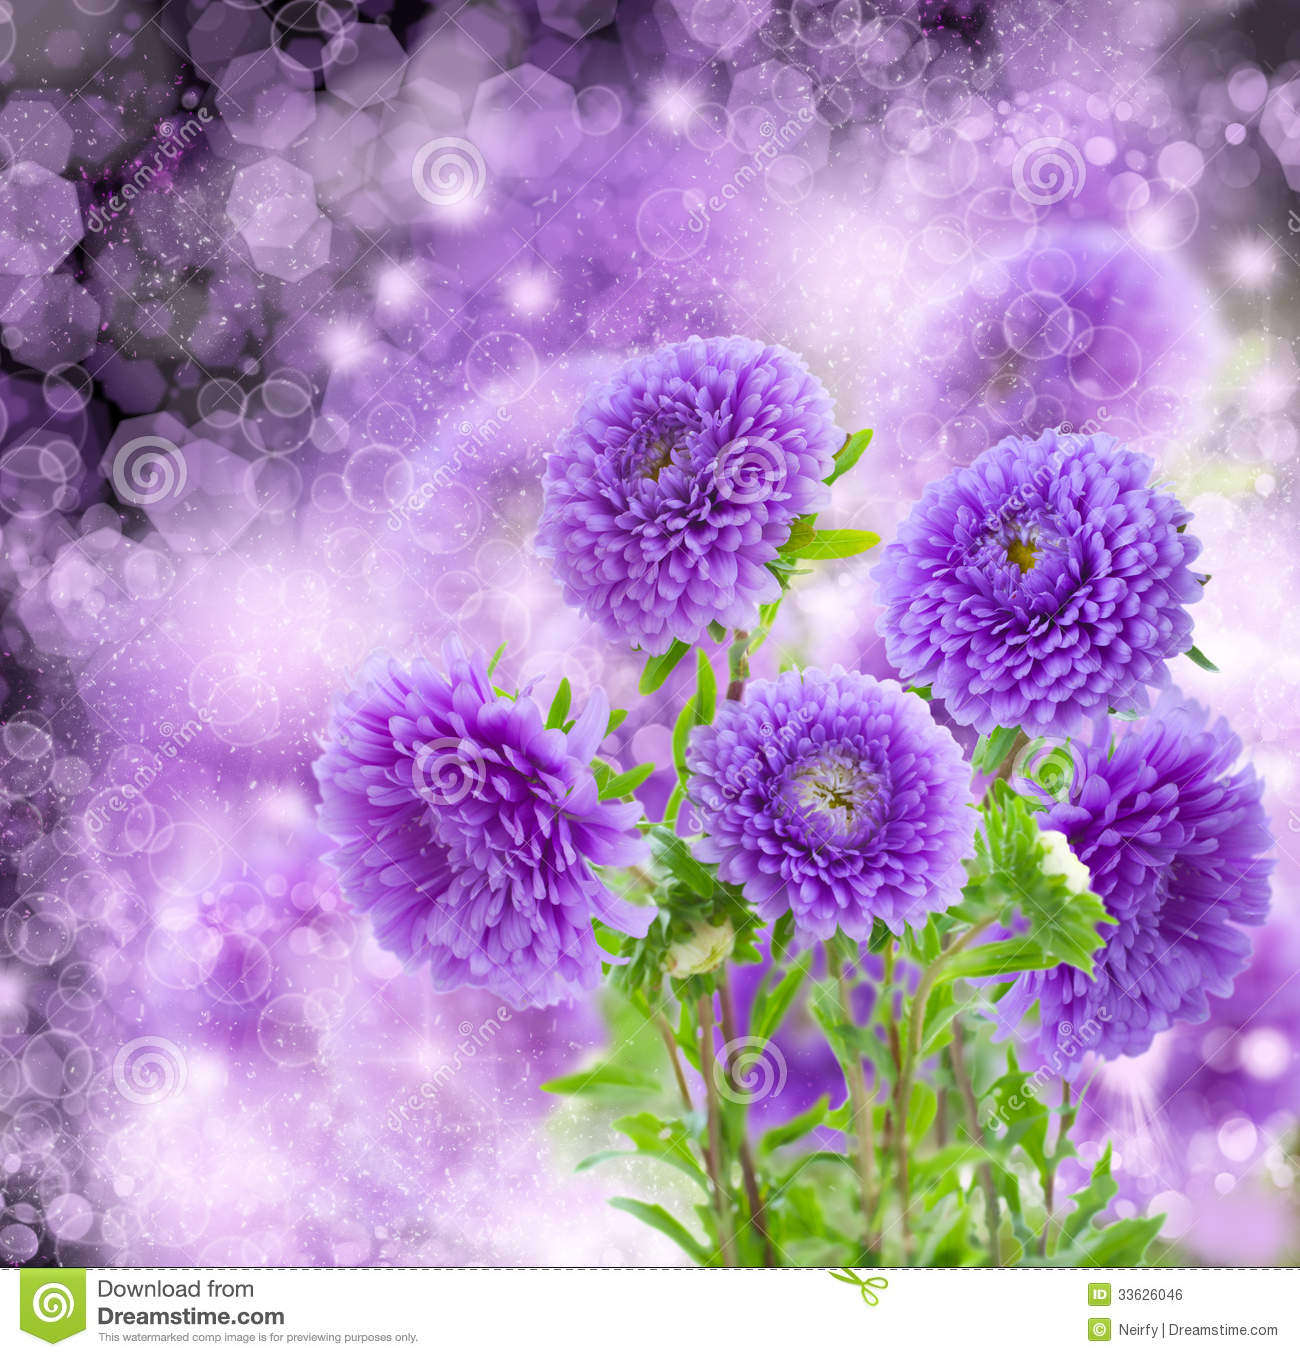 Fall Daisy Wallpaper Violet Aster Flowers On Bokeh Background Royalty Free